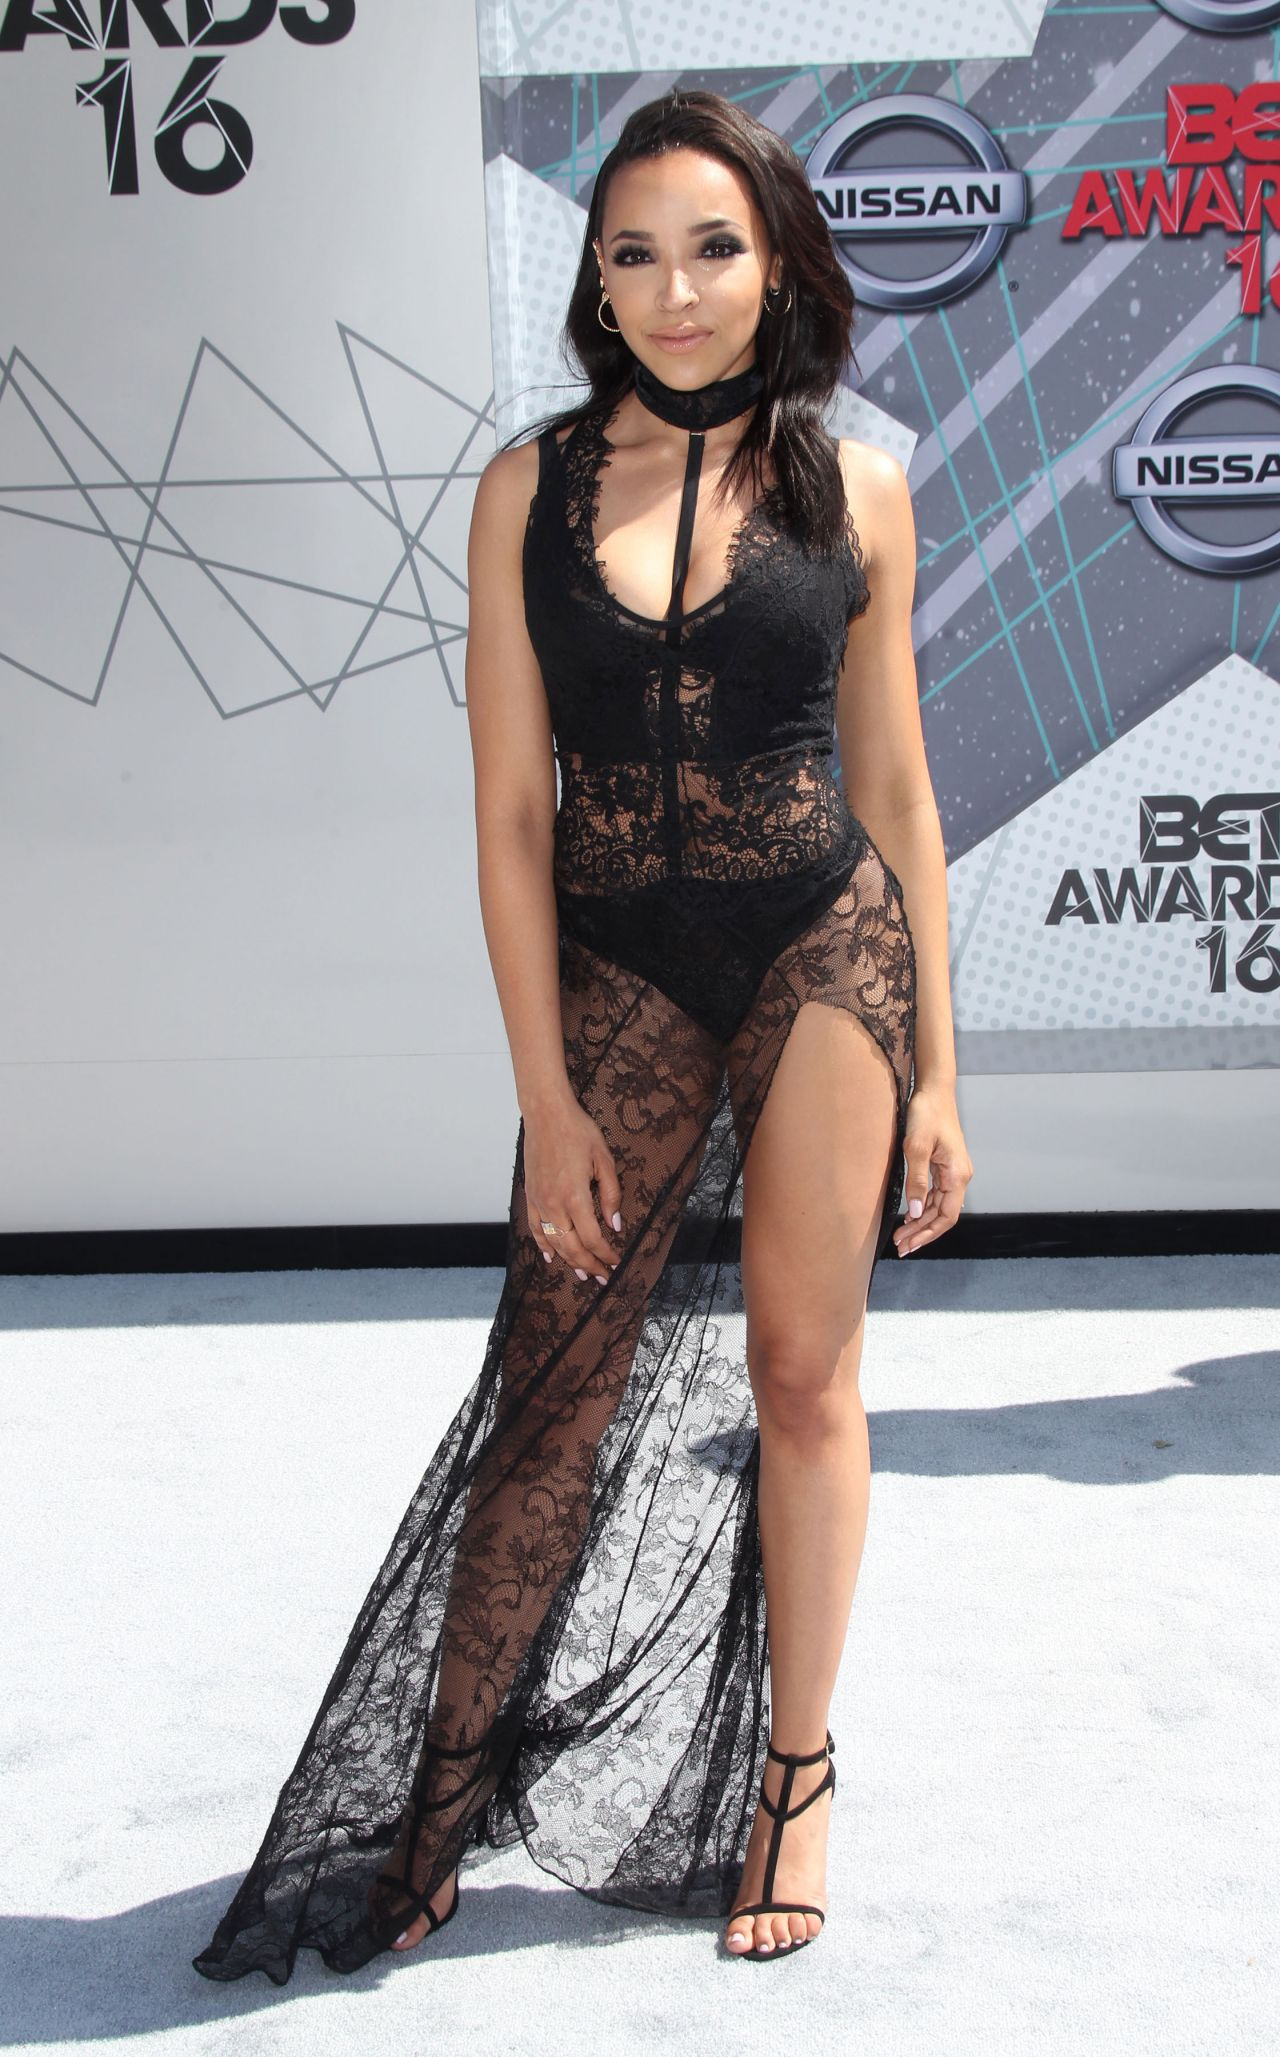 www.bet.com/bet awards